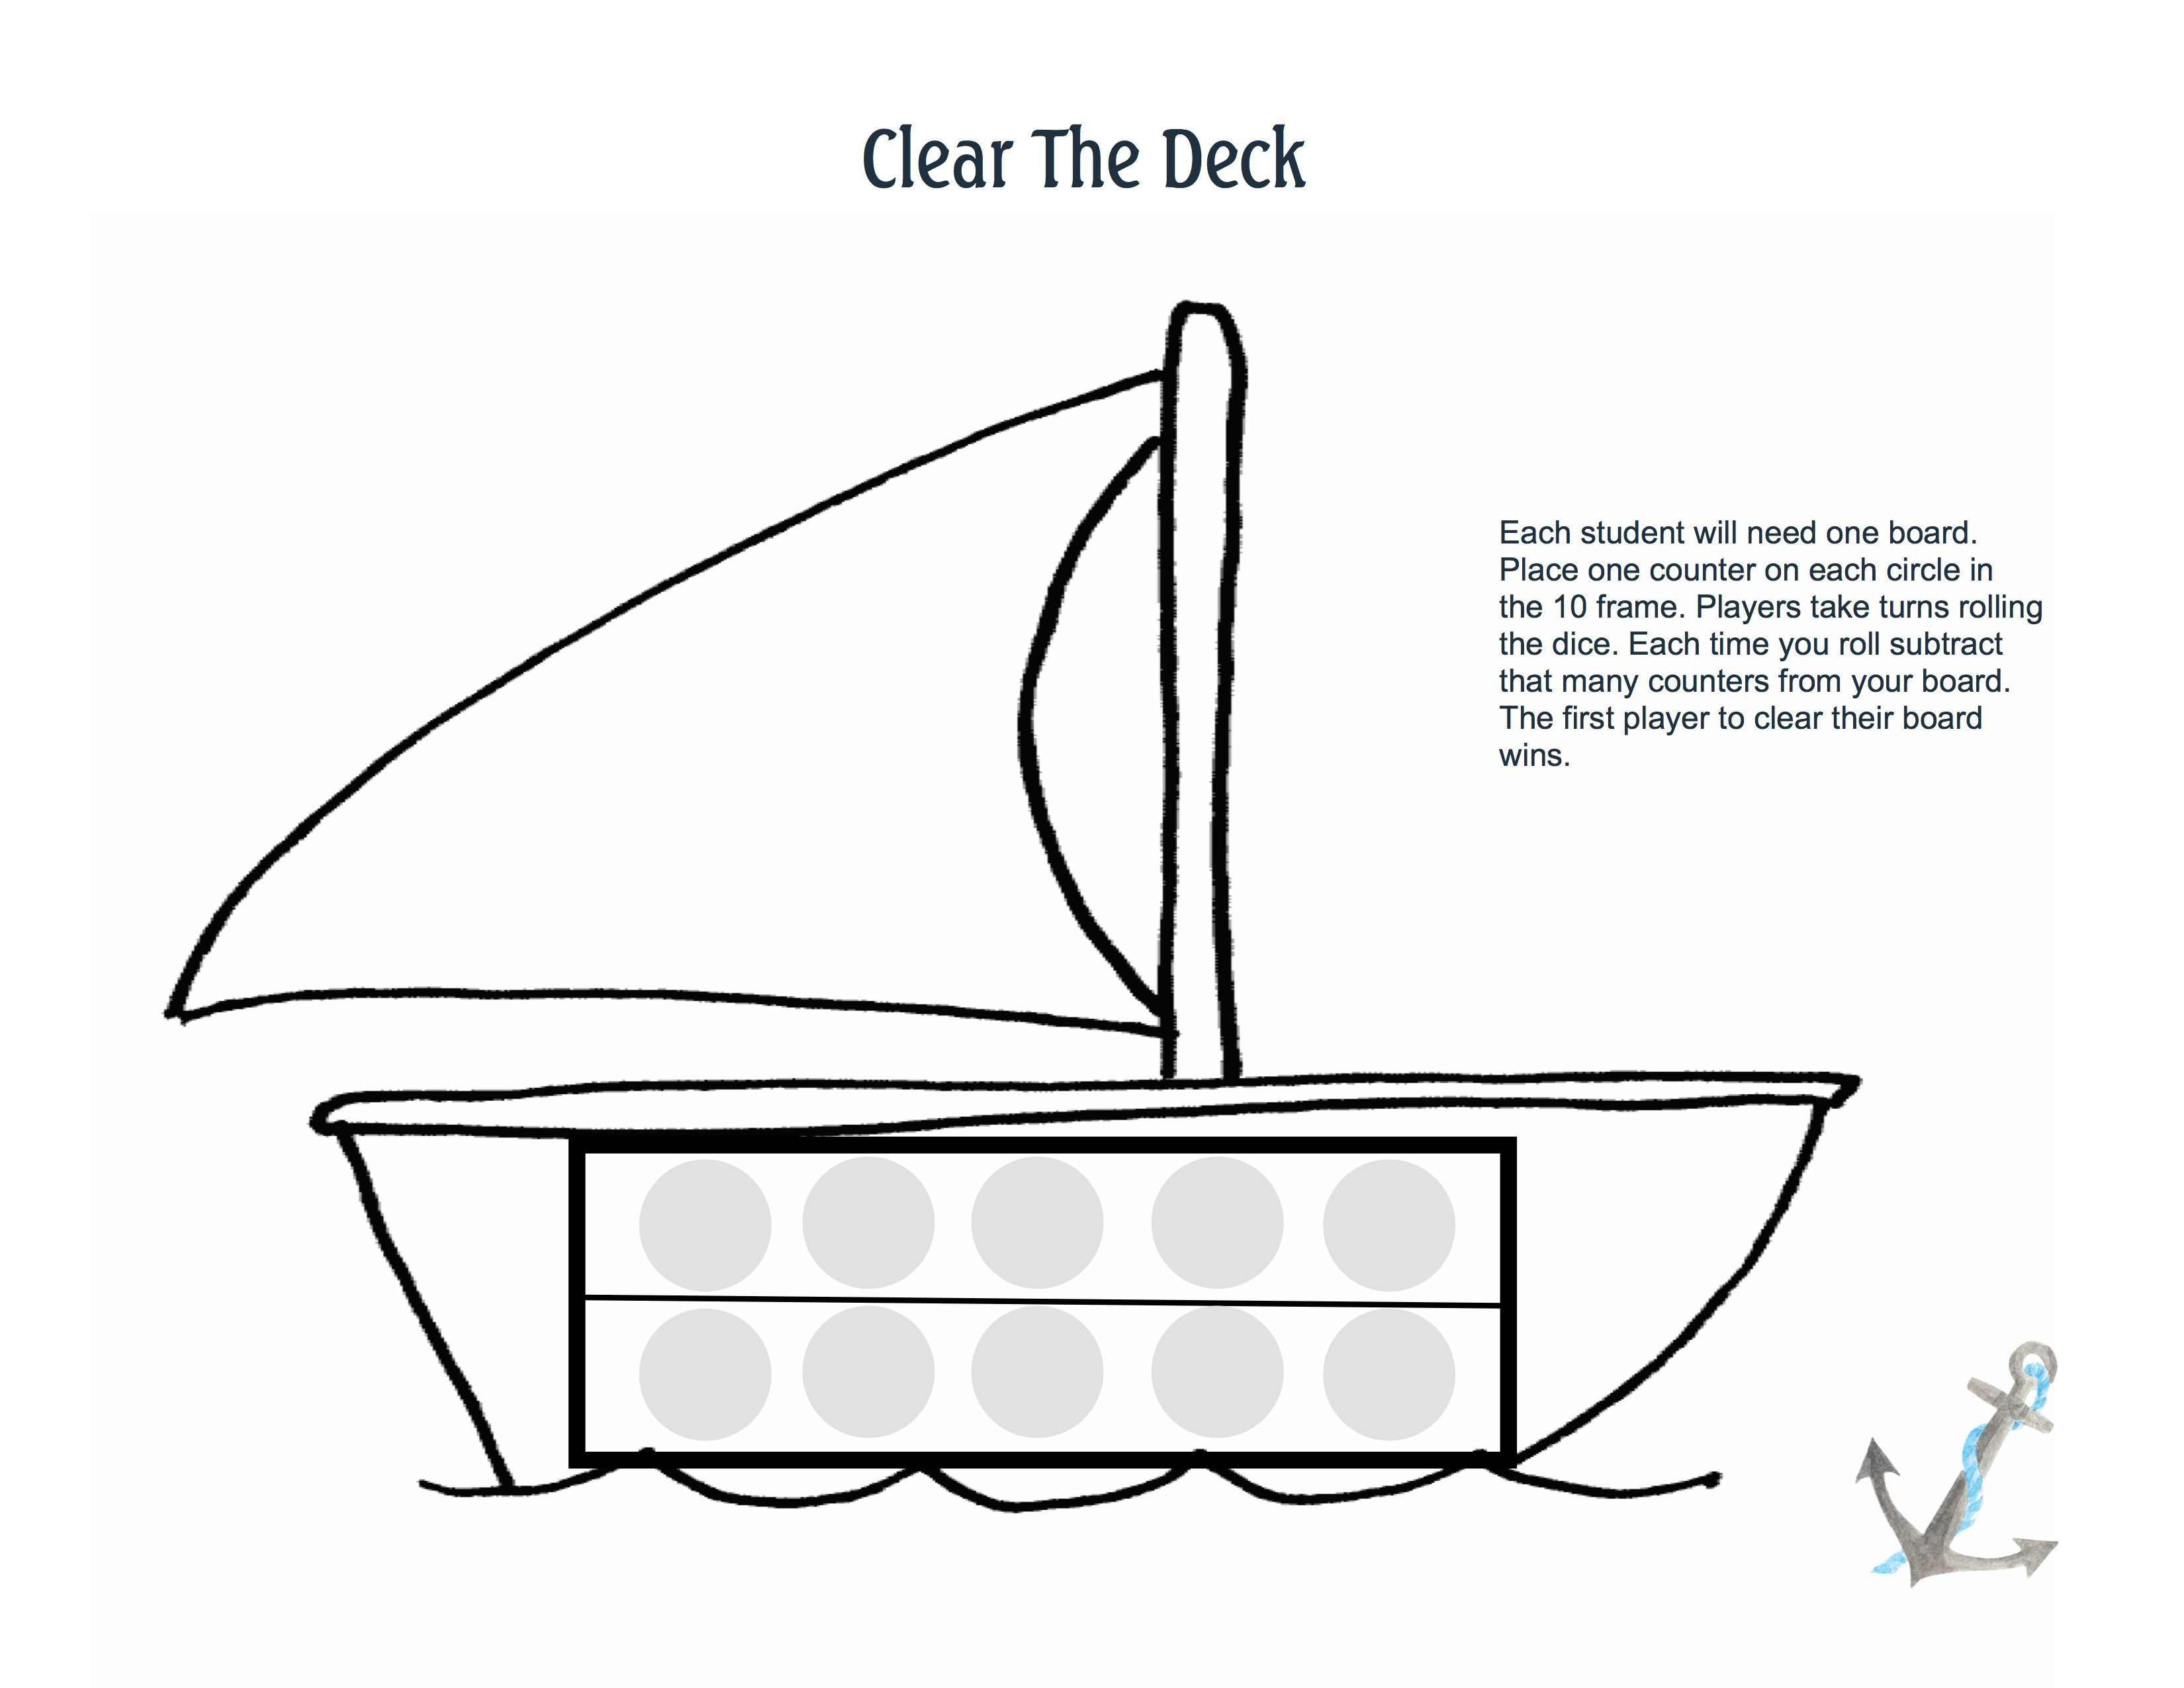 Clear The Deck 10 Frame Subtraction Game